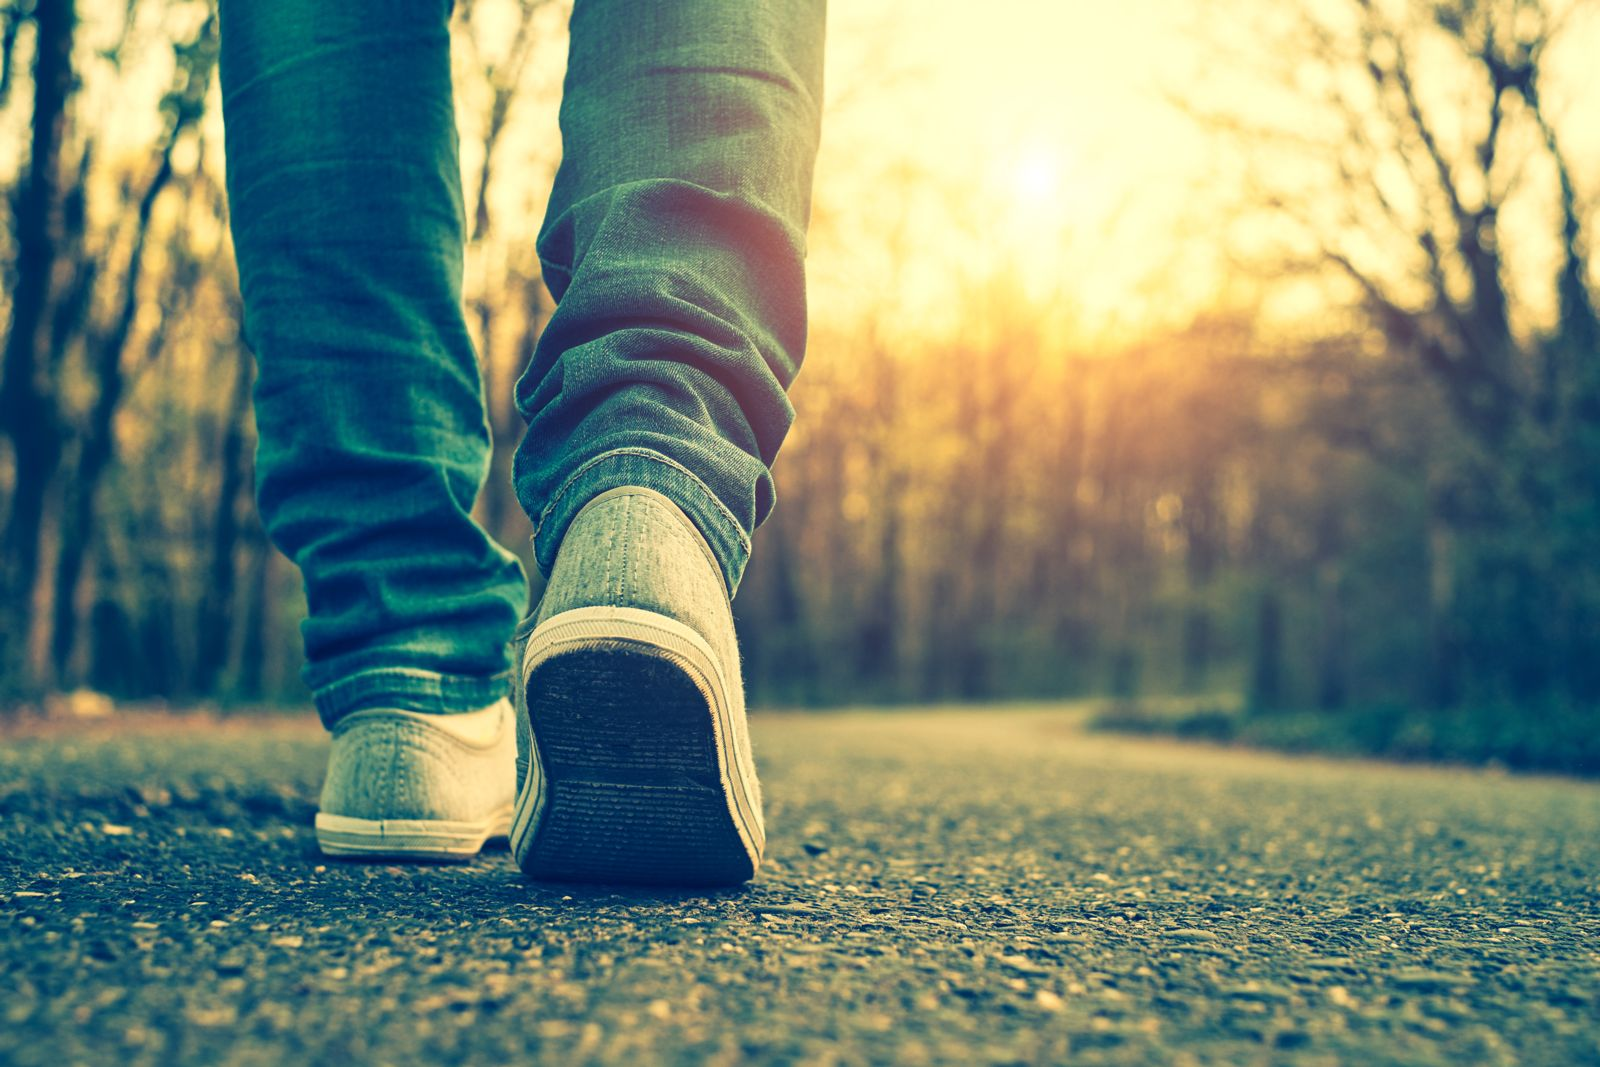 Walking is great exercise--as long as your form isn't hurting your feet!